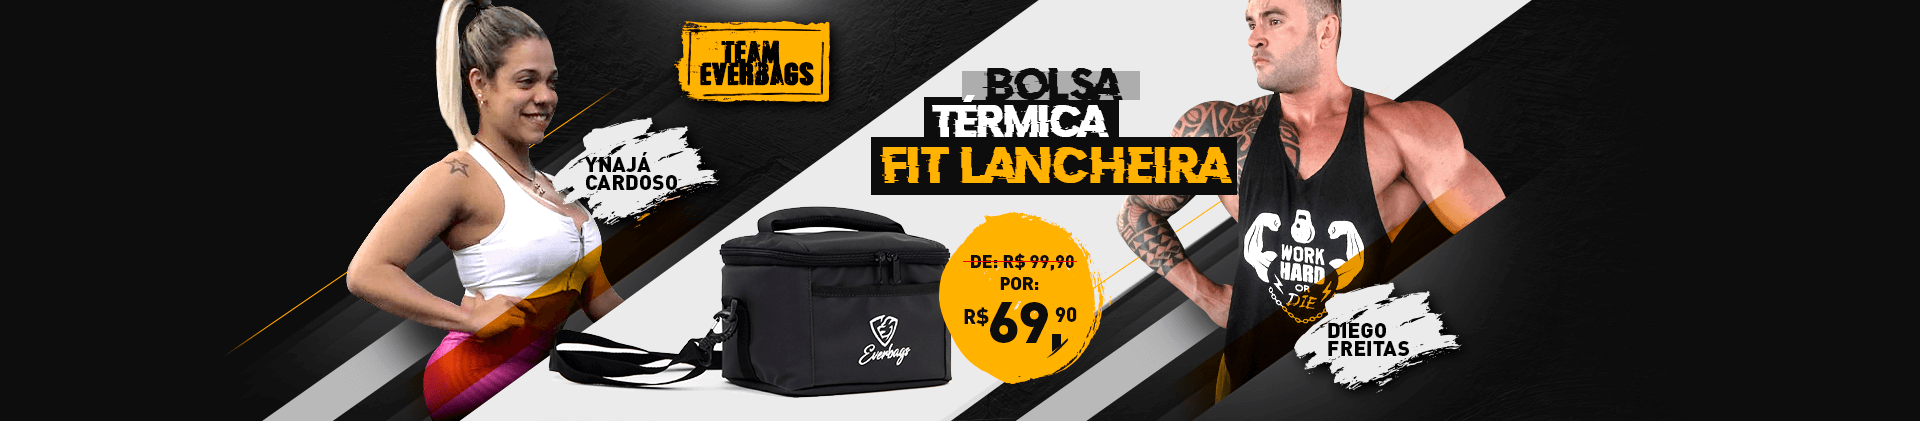 Bolsa Térmica Fit Lancheira Everbags